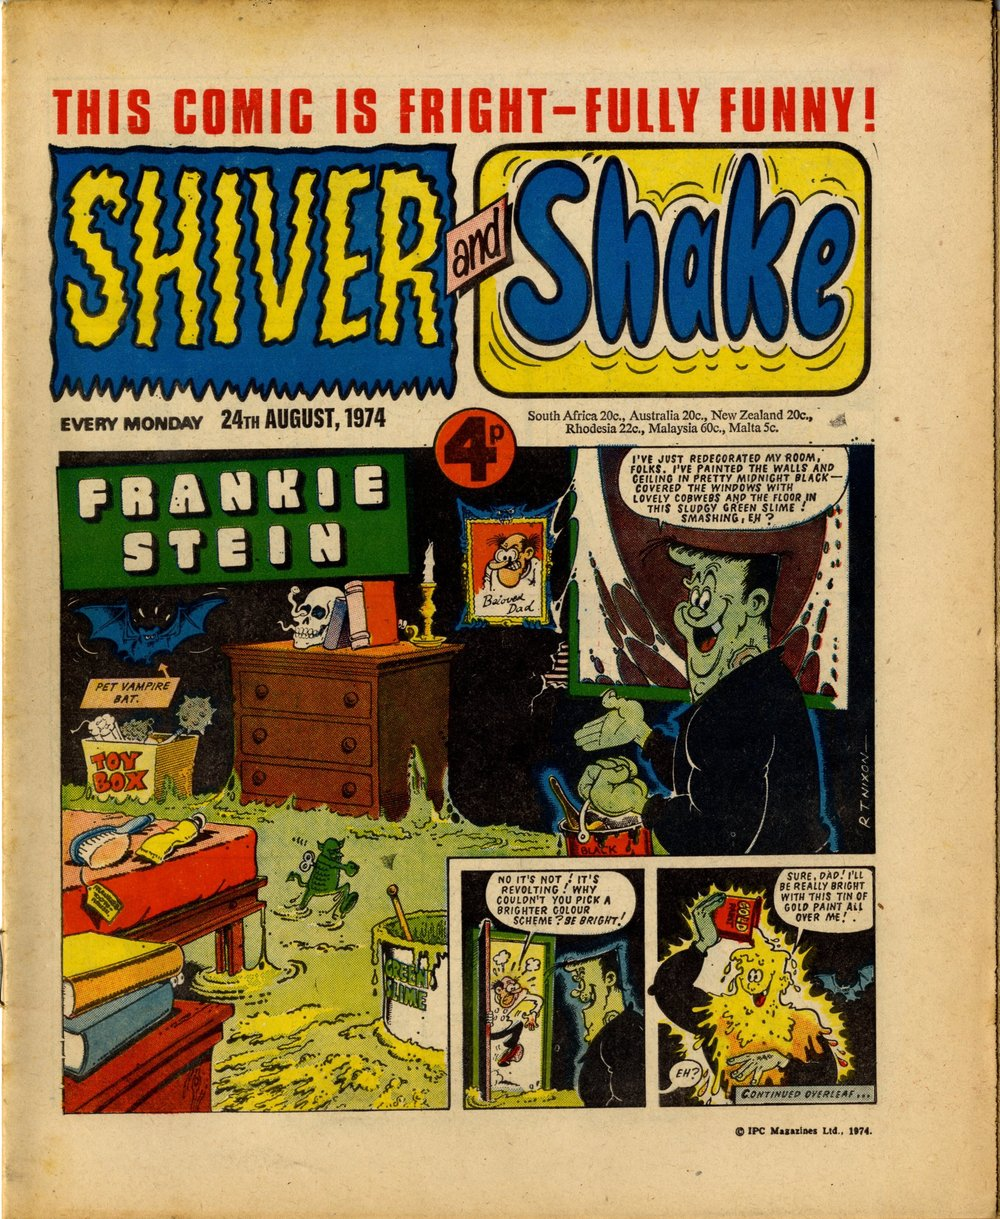 24 August 1974: Shiver and Shake (Frankie Stein: Robert Nixon (artist))